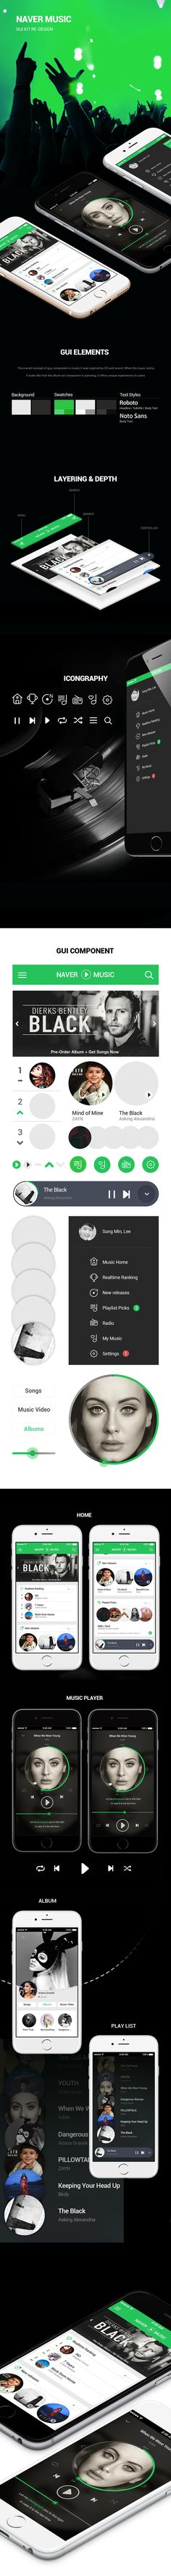 Lee Sung Min |  Naver Music Redesign Concept | Visual Interface Design(2) 2016 | Major in Digital Media Design │#hicoda │hicoda.hongik.ac.kr